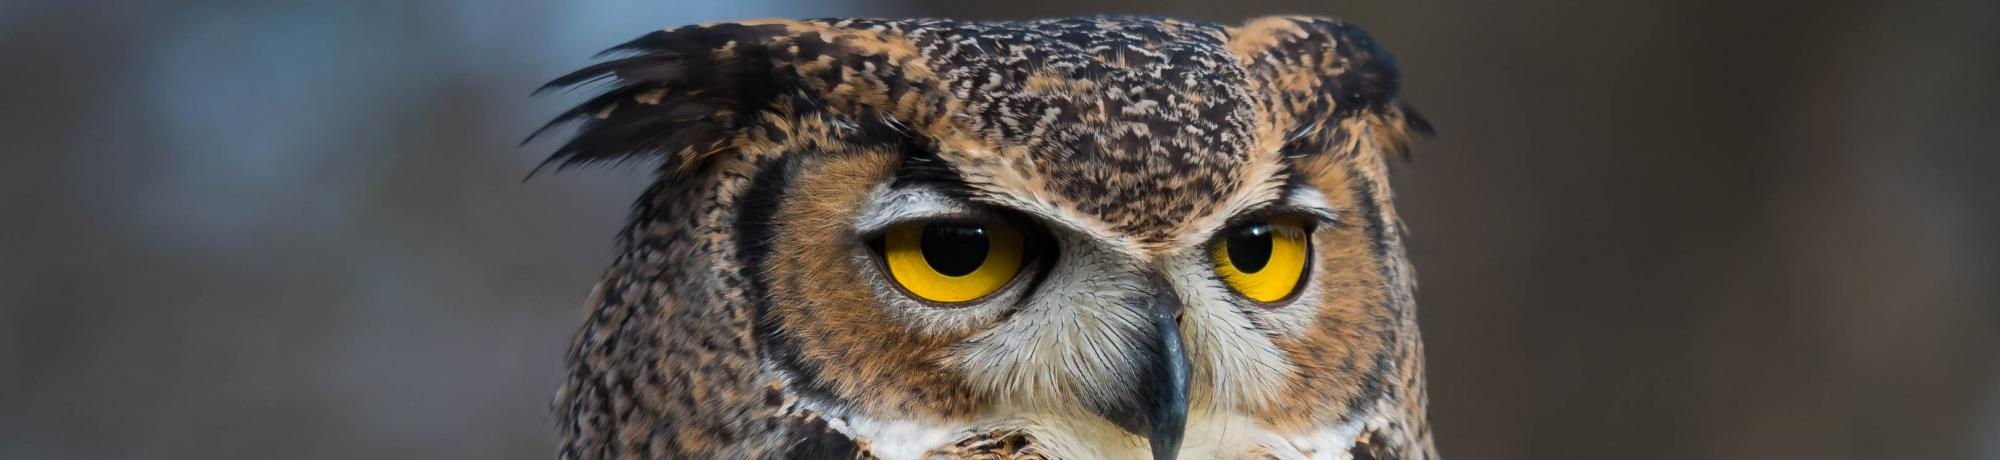 Luna the Great Horned Owl